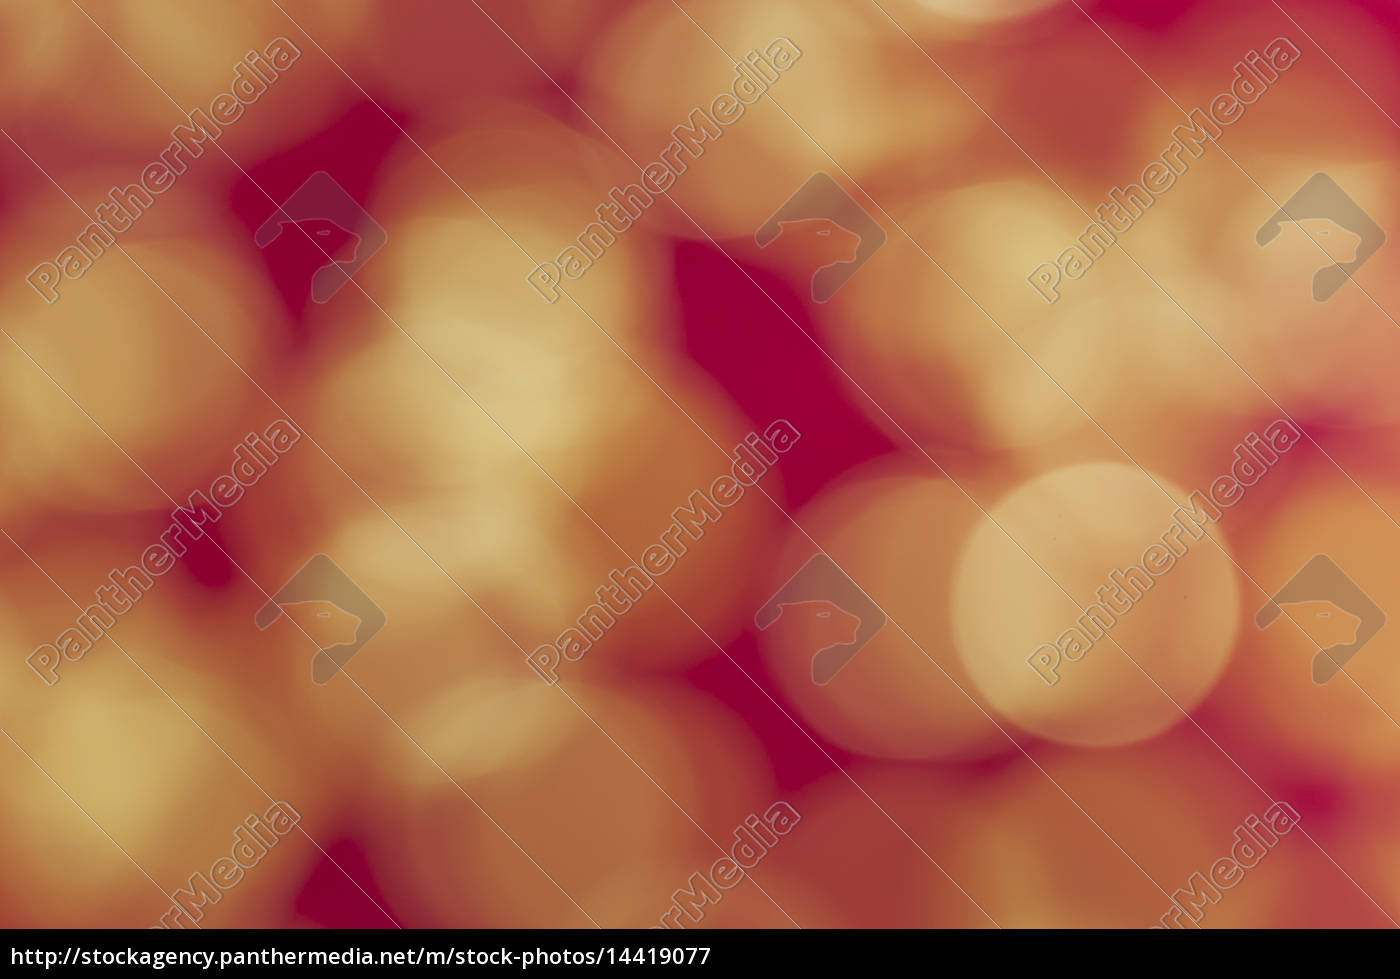 abstract, blurred, background - 14419077